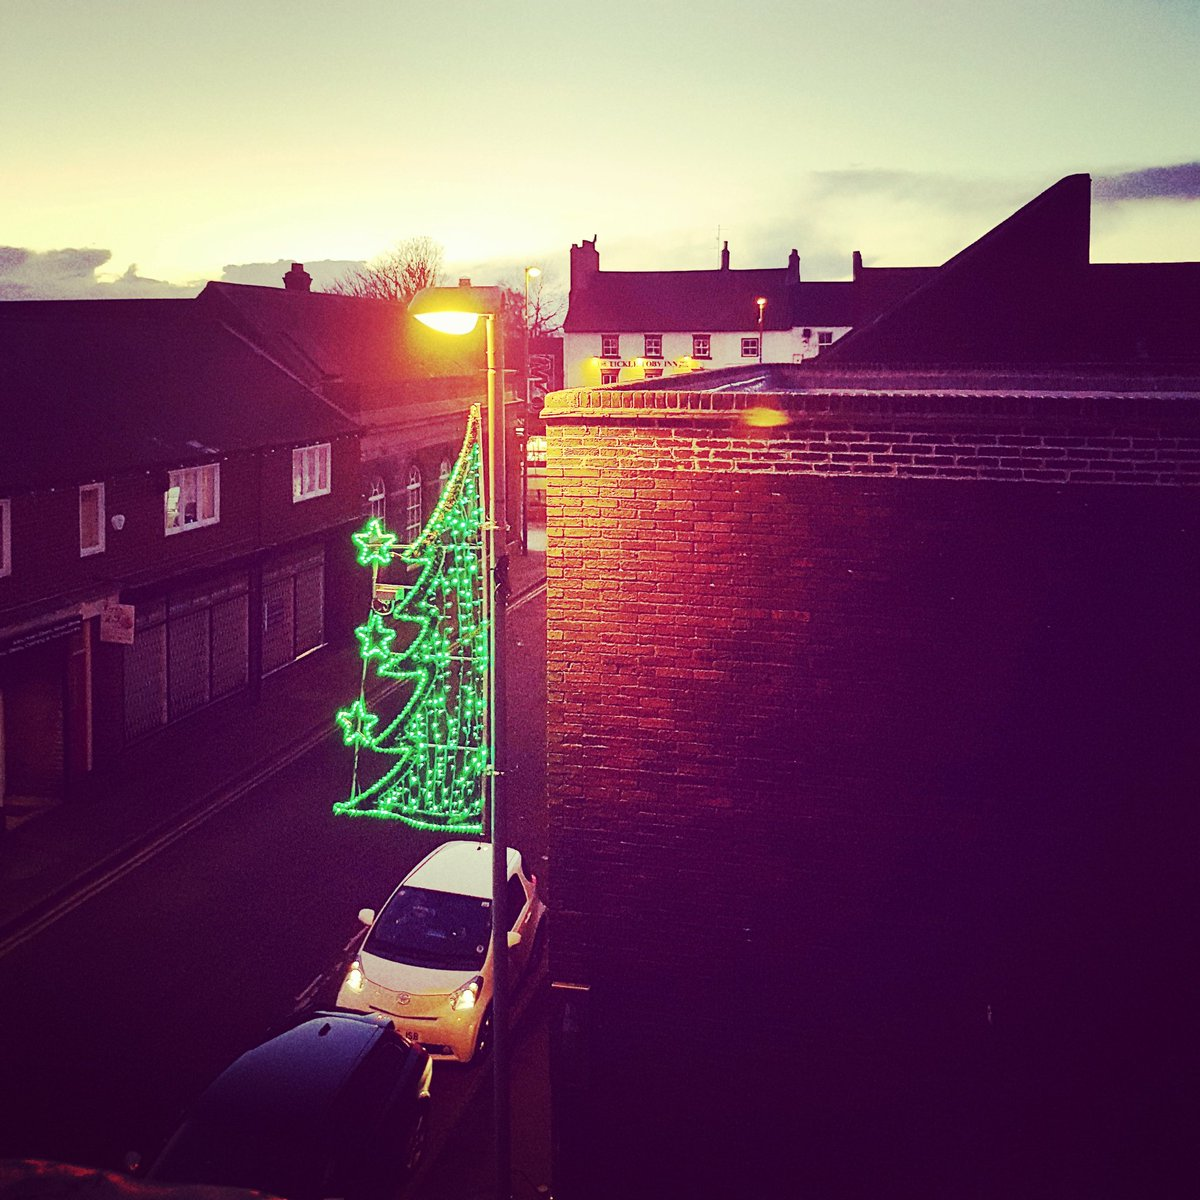 View from the office window; our very own &#39;Oxford Street&#39;. #christmas  #christmaslights #RfD #designforprint<br>http://pic.twitter.com/cKkVISNnLf